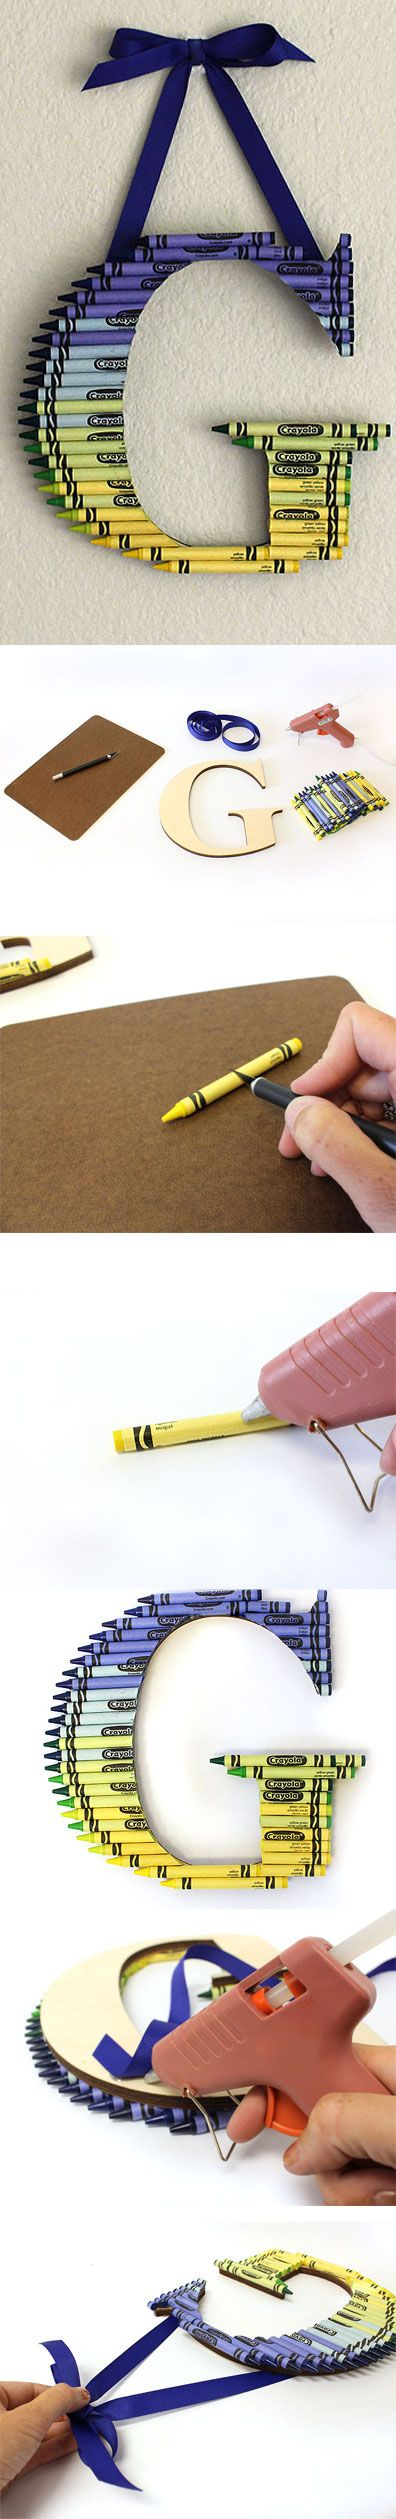 How to Create a Ombre Crayon Letter | CraftCuts.com